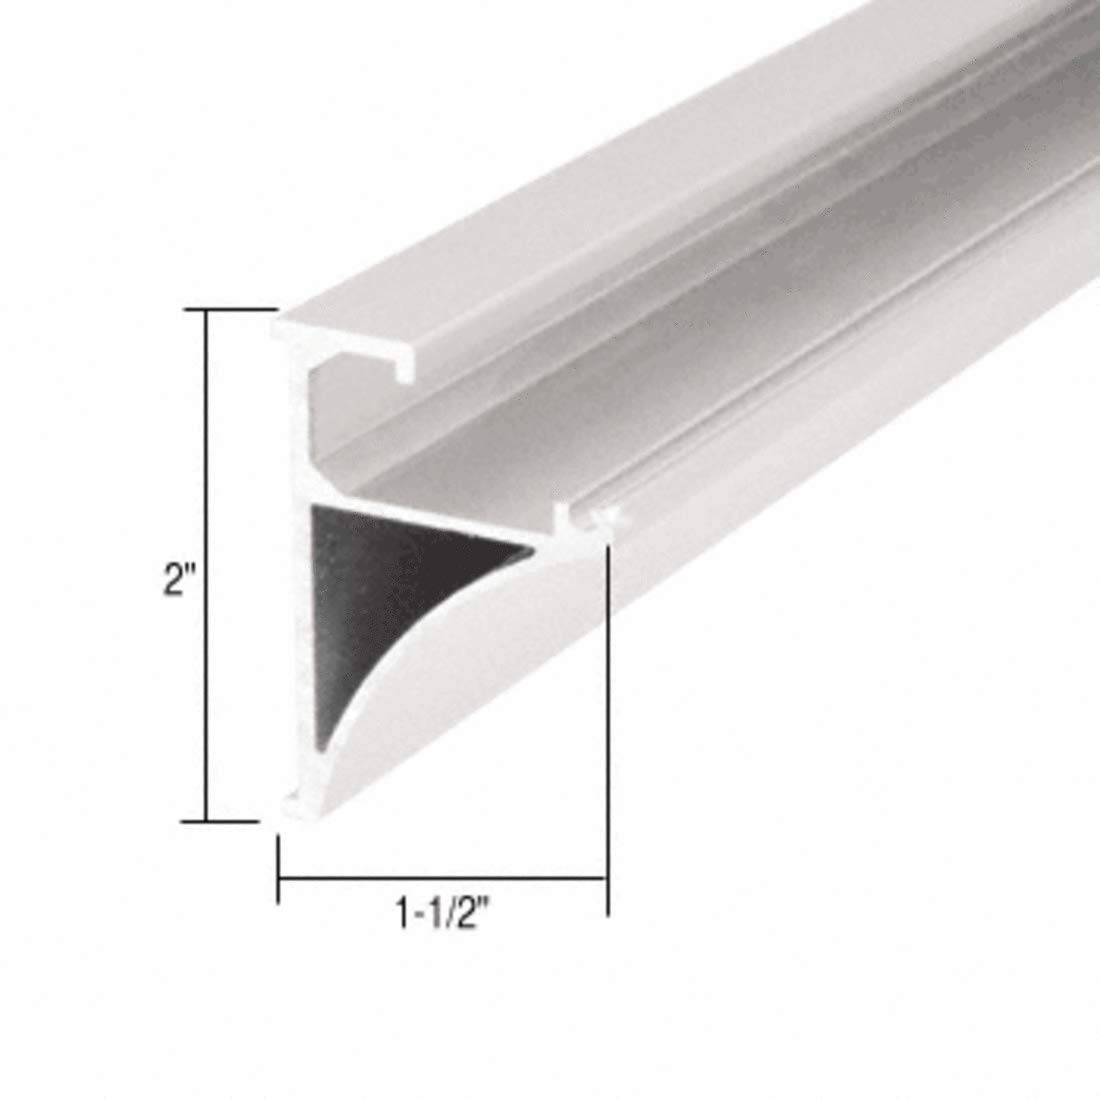 C.R. LAURENCE SE1496W CRL White 96 Aluminum Shelving Extrusion for 1/4 Glass by C.R. Laurence